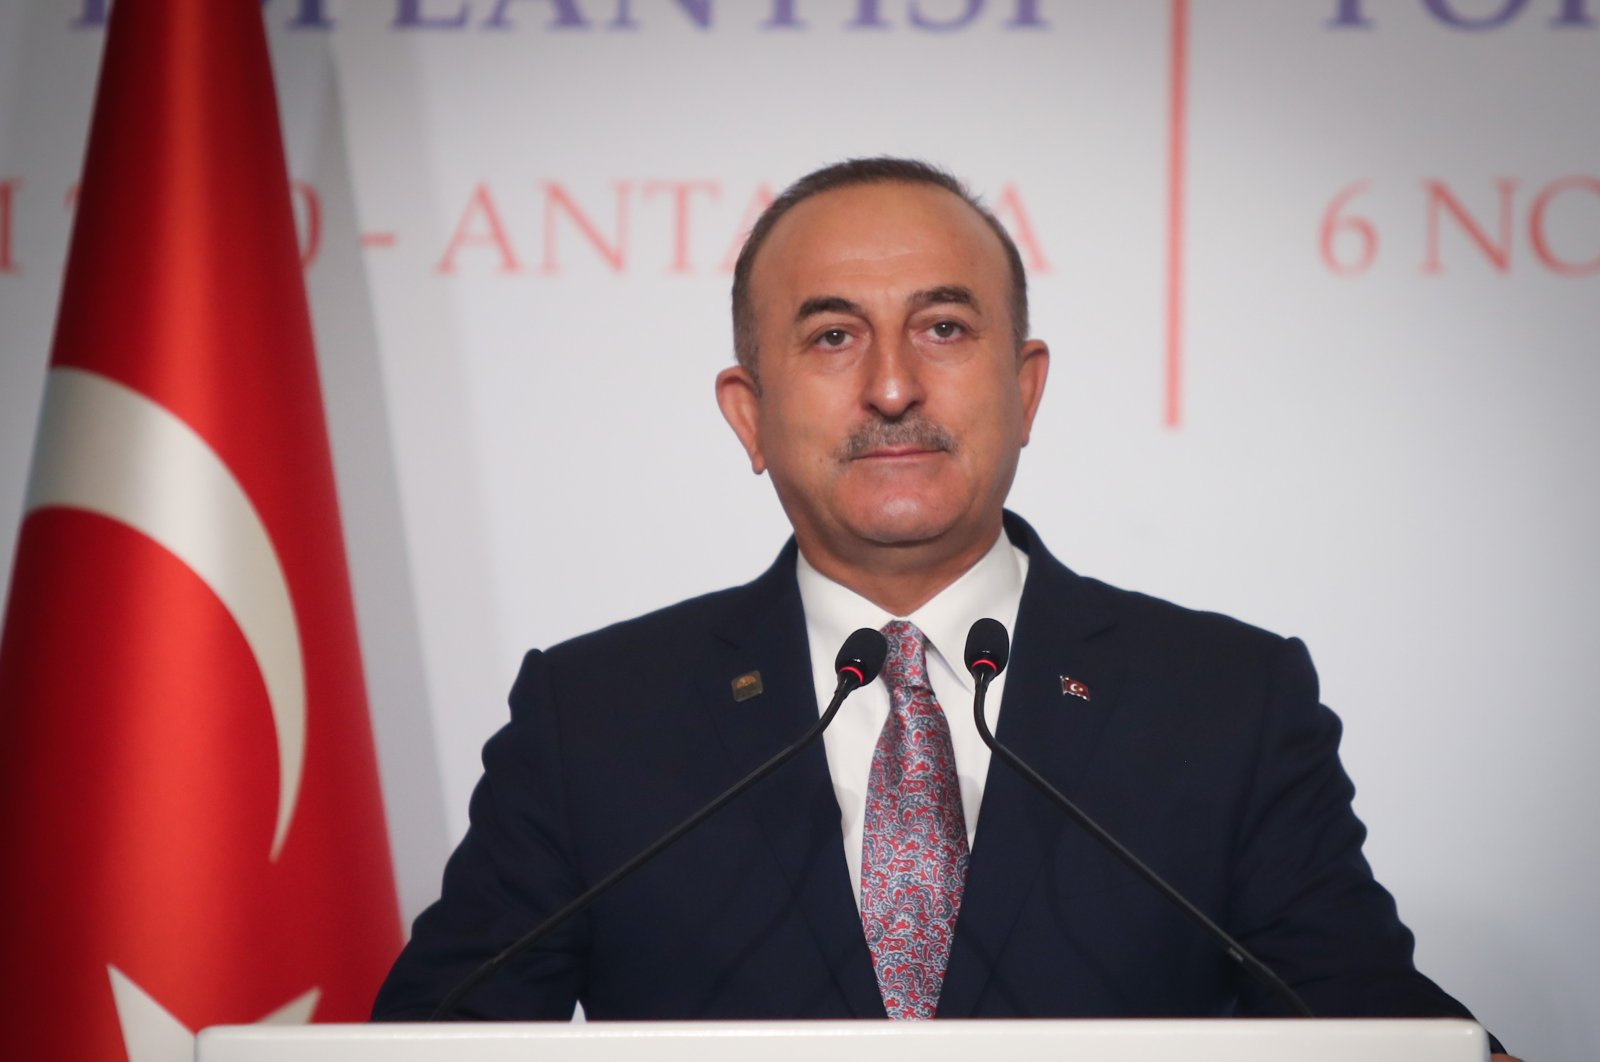 Foreign Minister Mevlüt Çavuşoğlu speaks at the opening of the informal meeting of the South-East European Cooperation Process (SEECP) in Turkey's Mediterranean province of Antalya, Nov. 6, 2020. (AA)